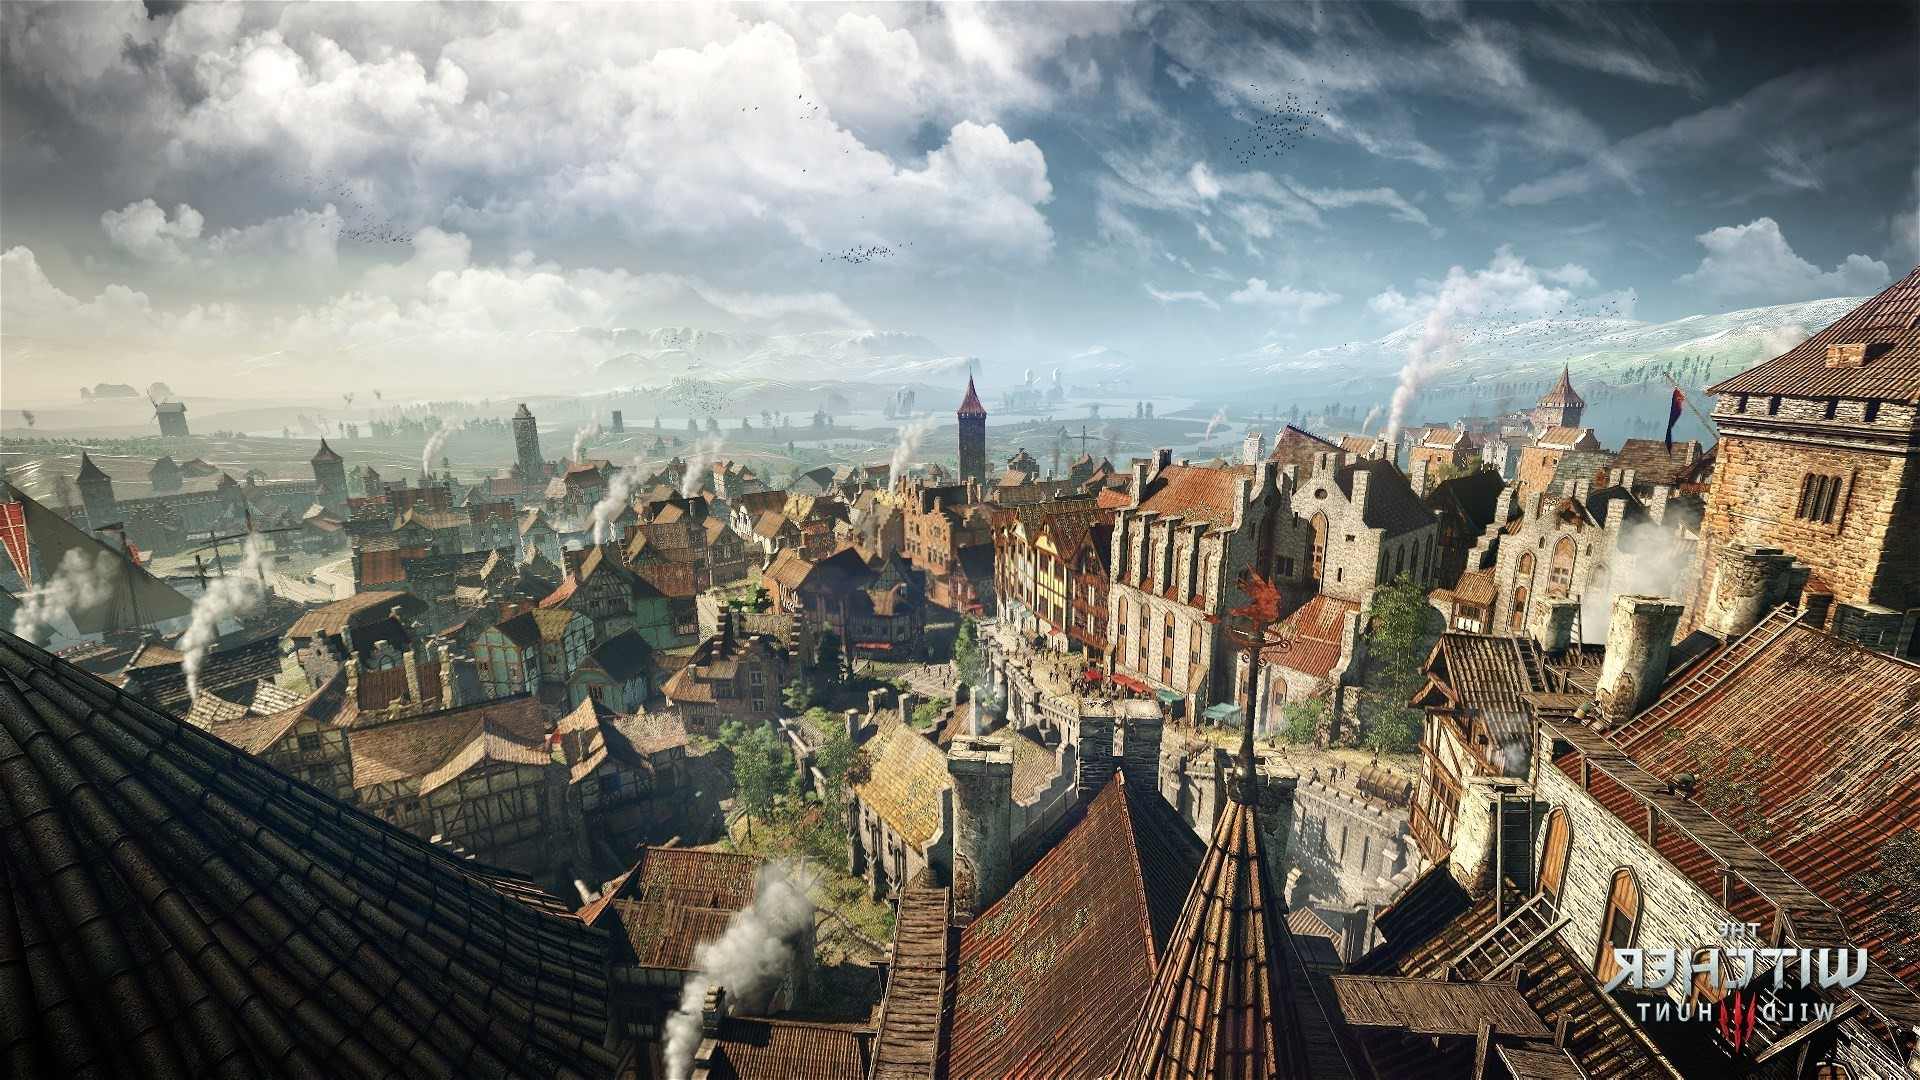 video Games, The Witcher 3: Wild Hunt, The Witcher, City, Cityscape  Wallpapers HD / Desktop and Mobile Backgrounds